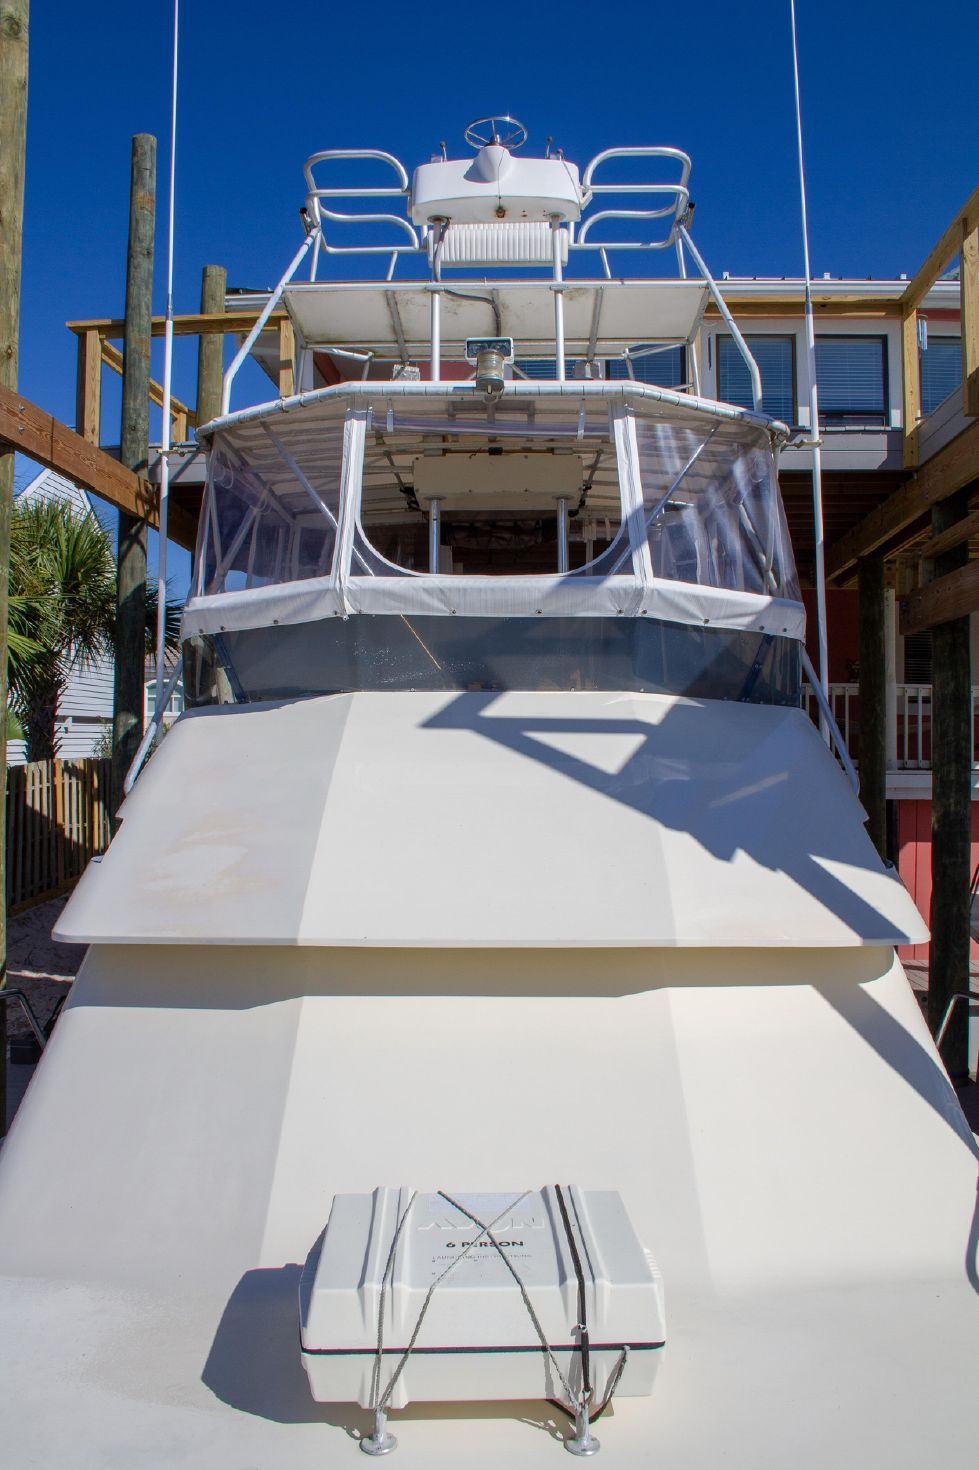 1987 Hatteras 1987 41 Convertible - Looking Aft At Tower